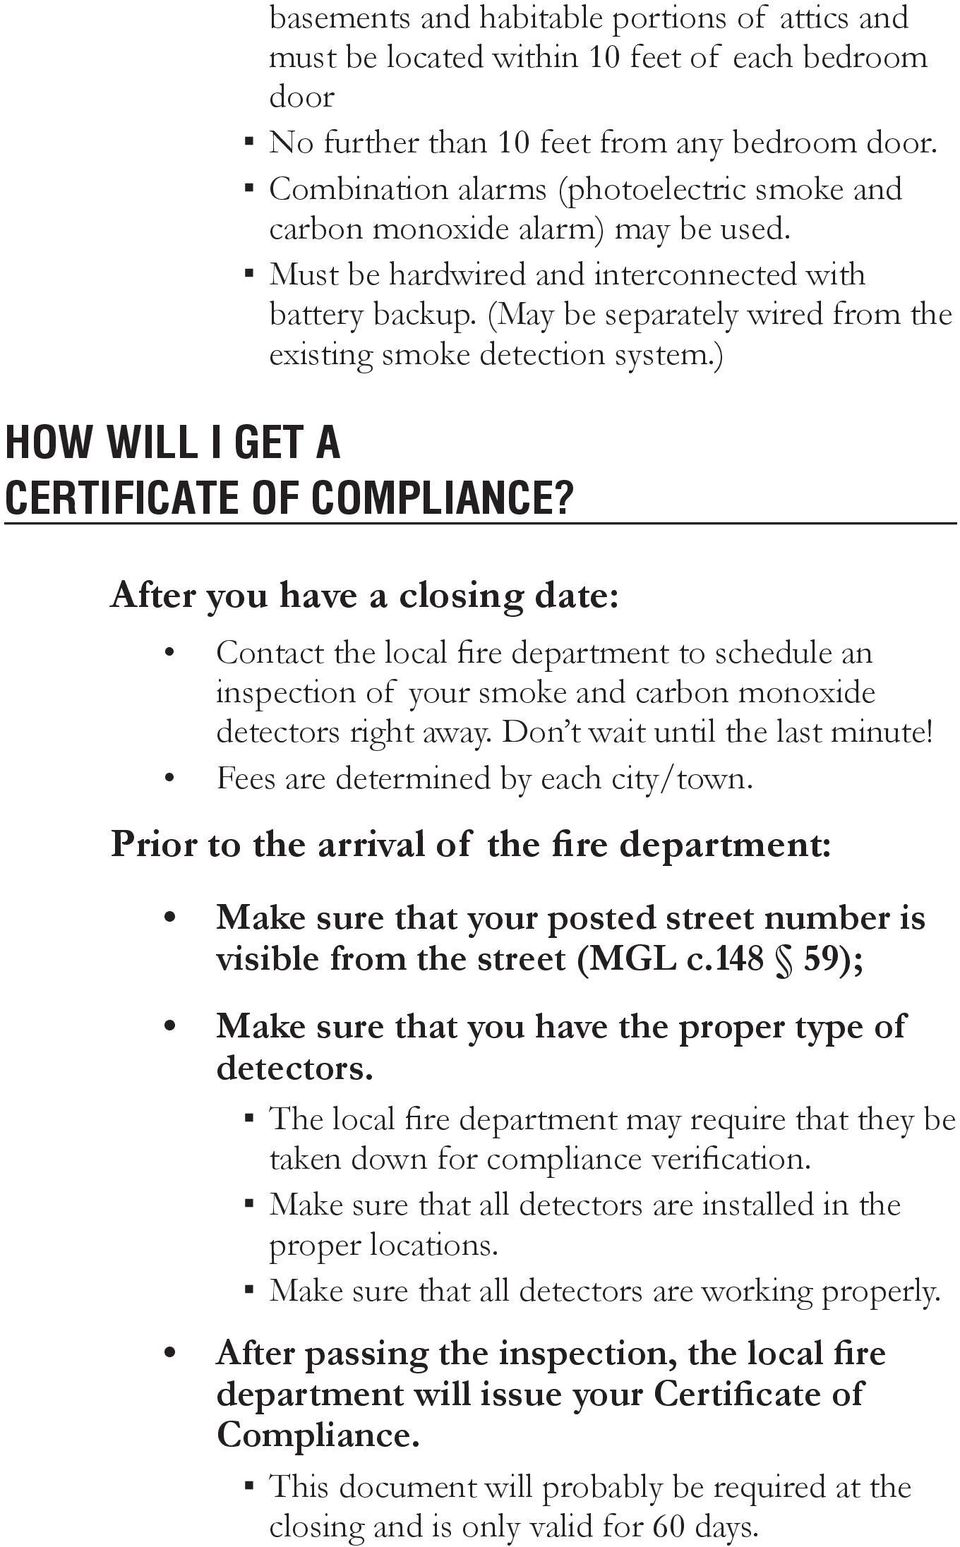 (May be separately wired from the existing smoke detection system.) How Will I Get a Certificate of Compliance?